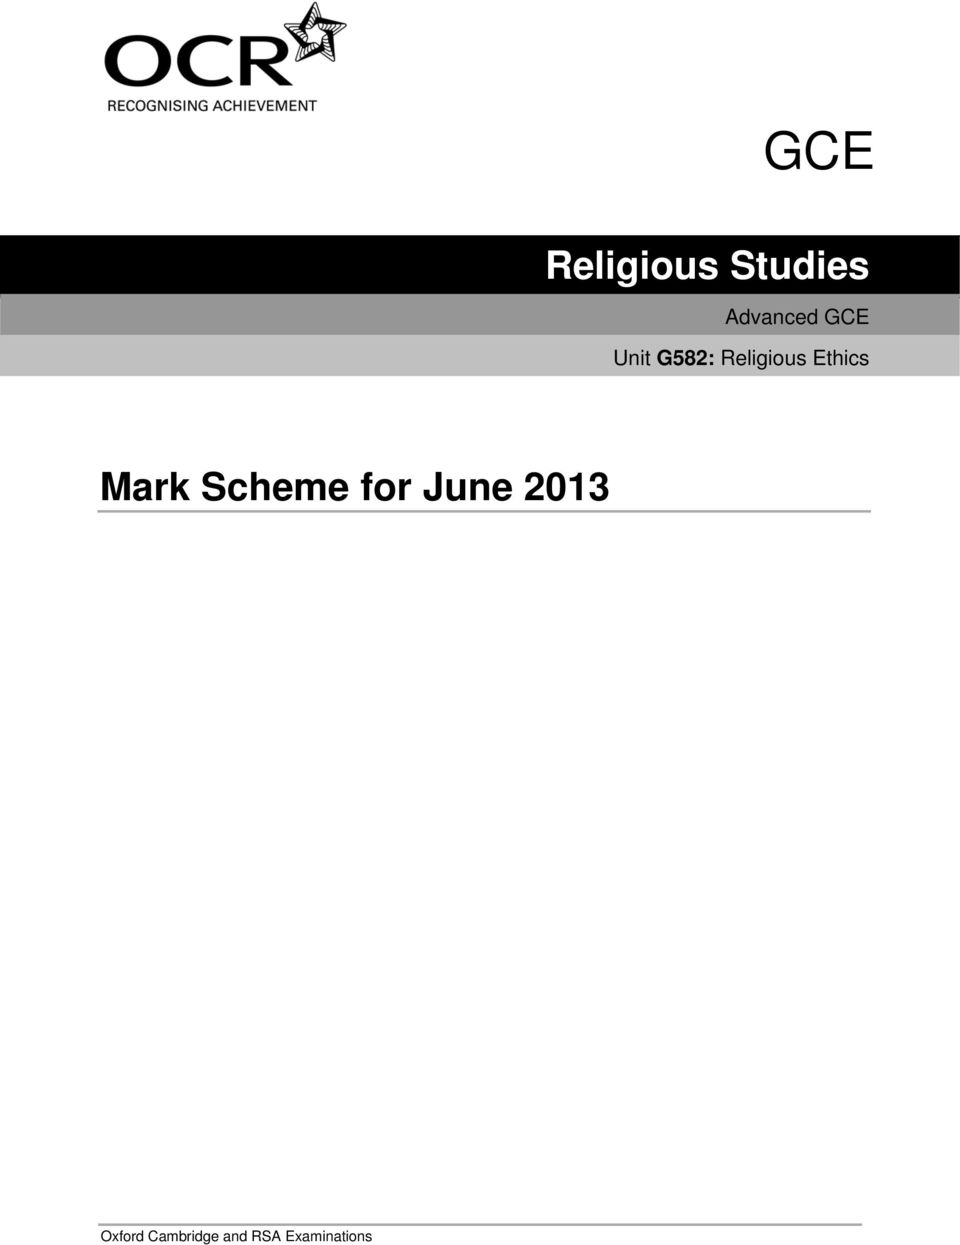 Mark Scheme for June 2013